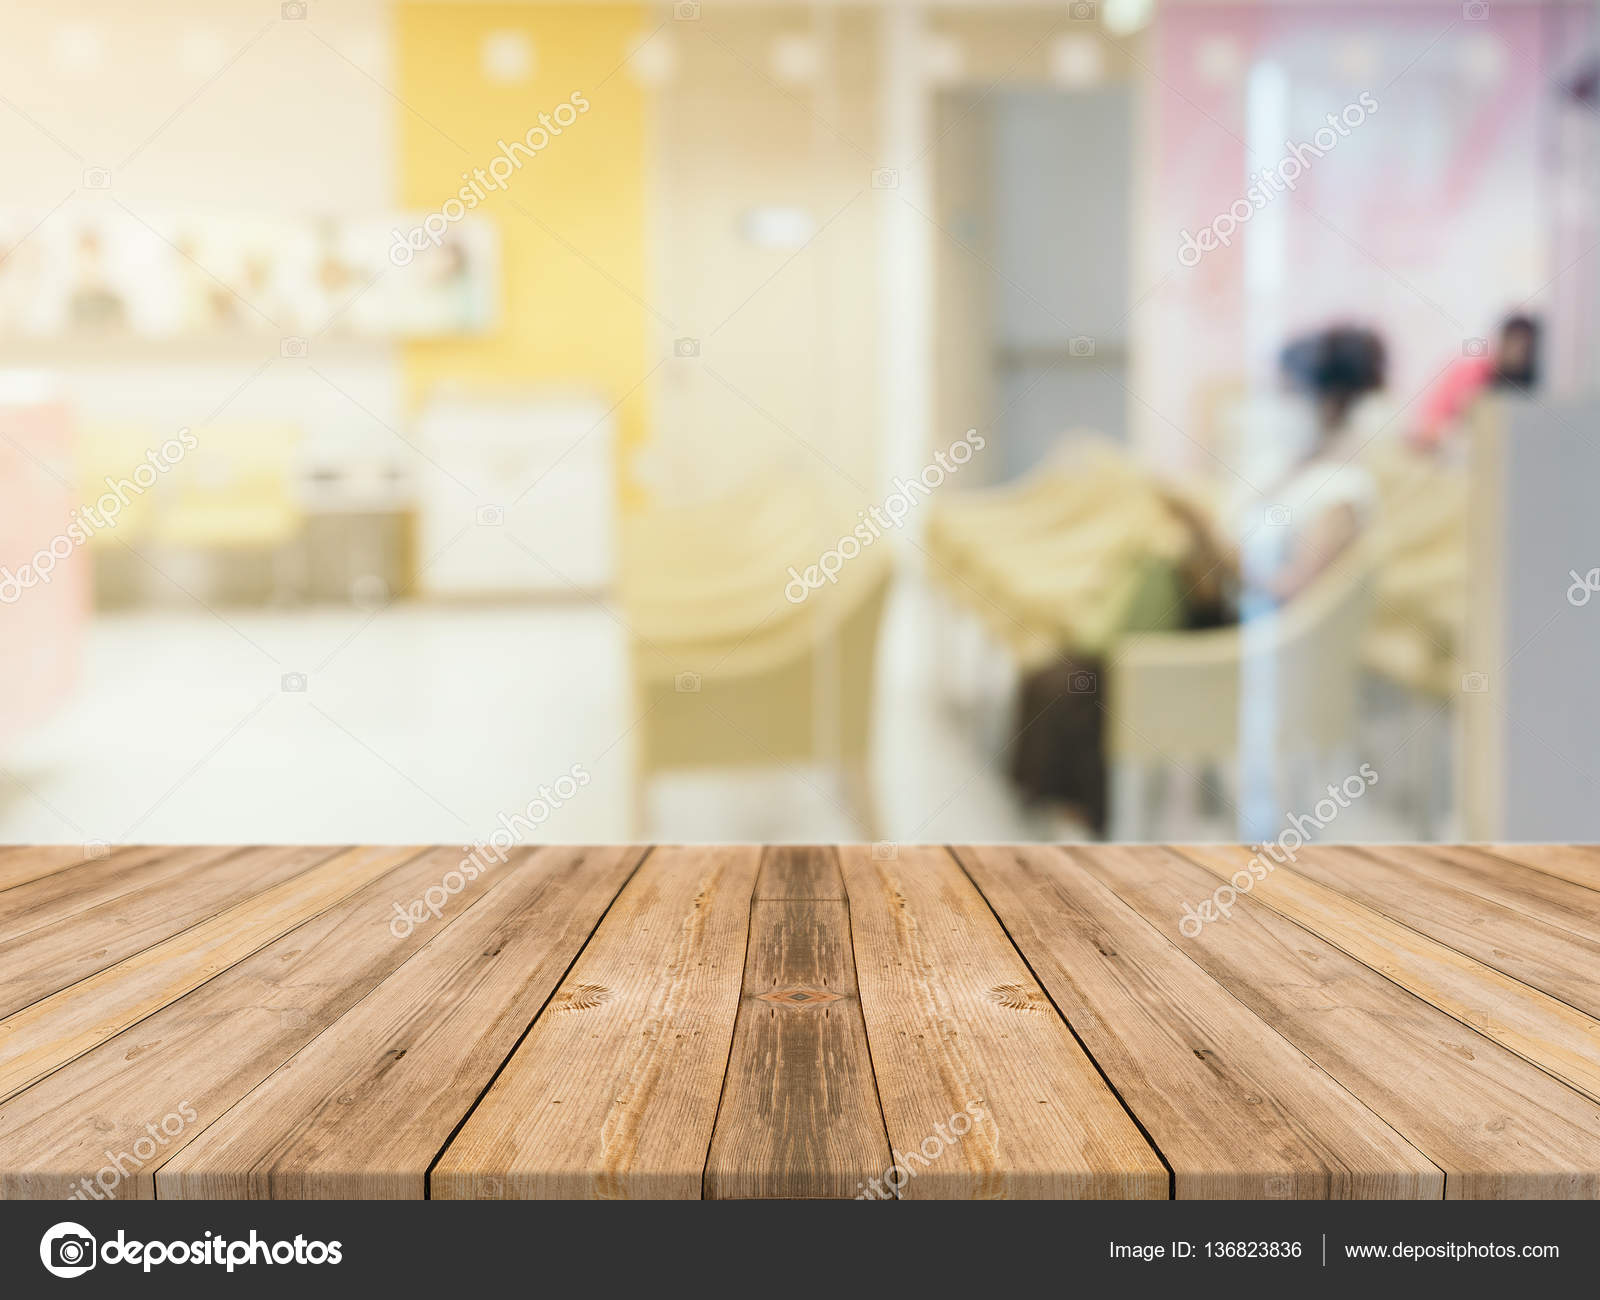 Empty wood table and blurred living room background stock photo - Wooden Board Empty Table In Front Of Blurred Background Perspective Brown Wood Table Over Blur Room In Hospital Background Can Be Used Mock Up For